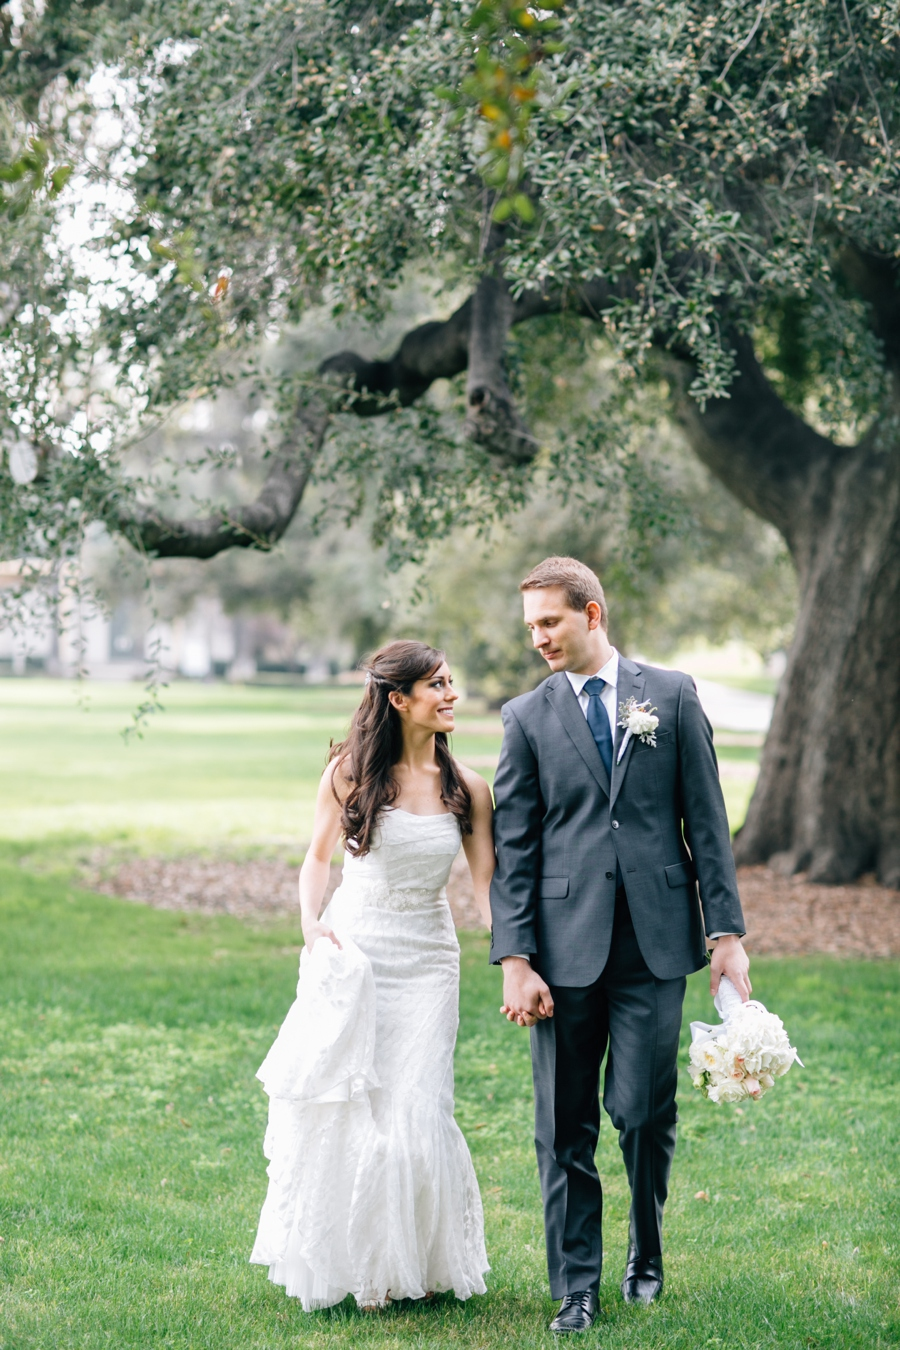 247_University_Of_Redlands_Redlands_California_Wedding_Photo.JPG